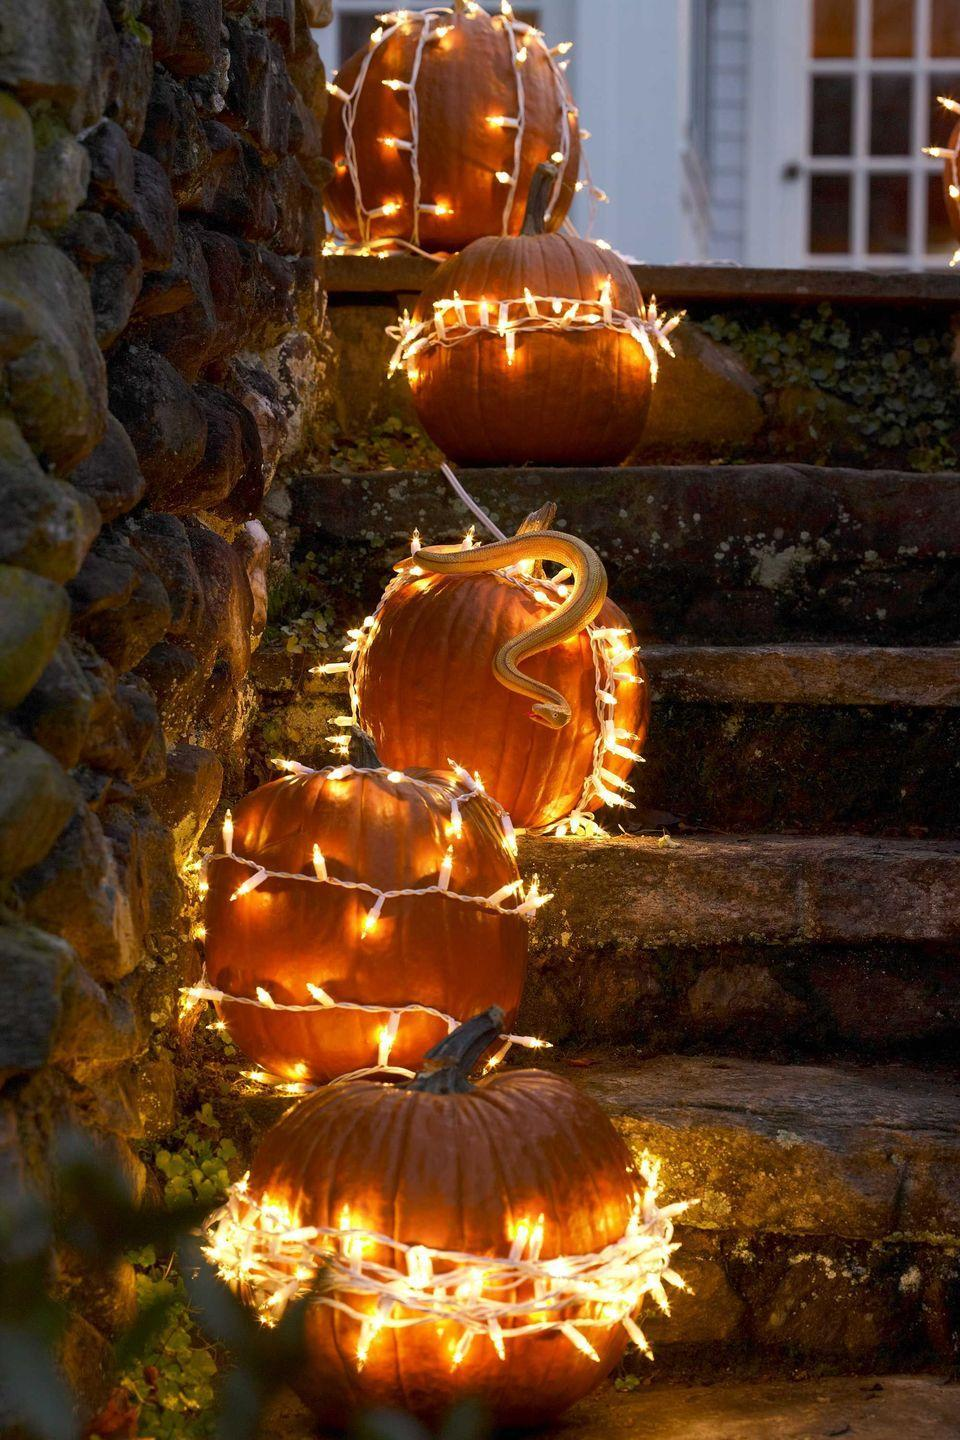 <p>Set your stoop ablaze by stringing white outdoor holiday lights around regular pumpkins. It's a simple way to set a spooky mood — and illuminate your walkway!</p>